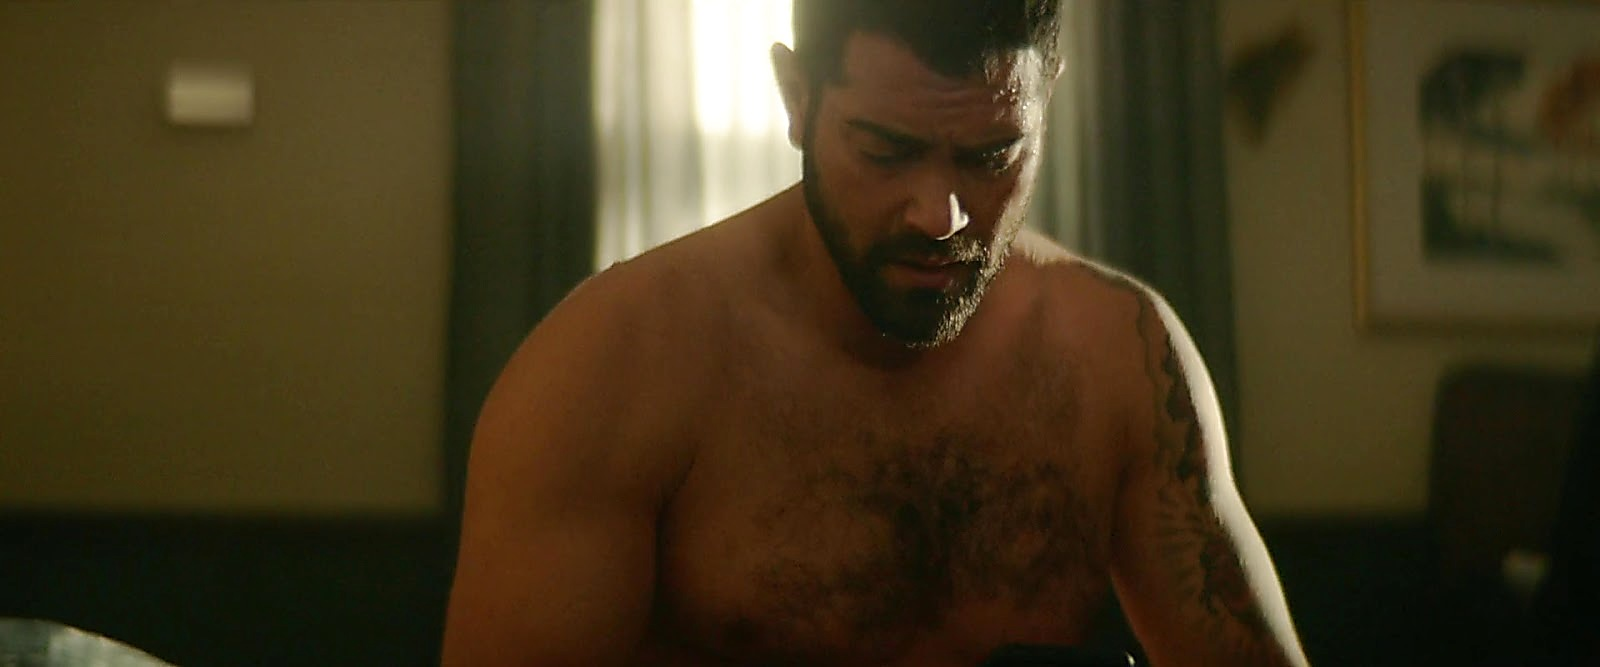 Jesse Metcalfe sexy shirtless scene August 25, 2020, 10am